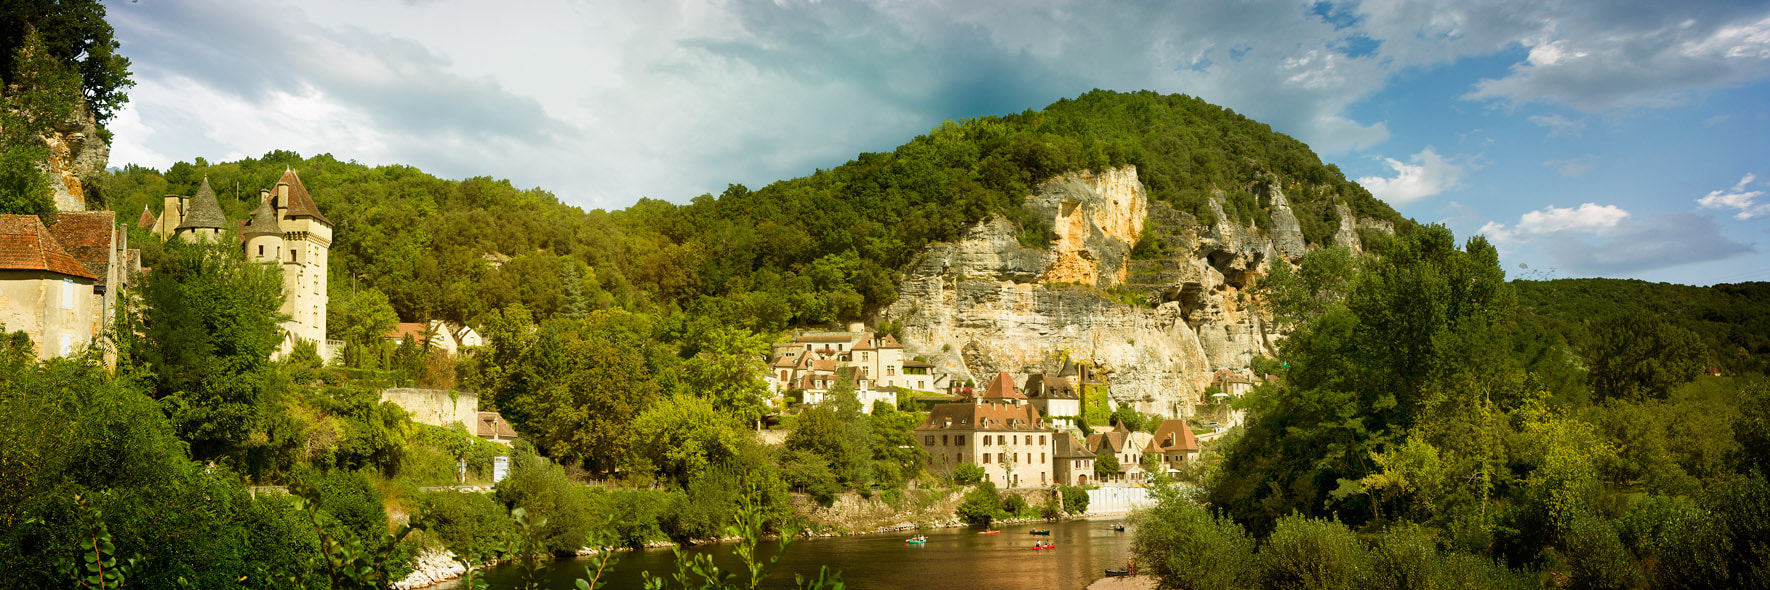 Photograph La Roque-Gageac by PolTergejst  on 500px